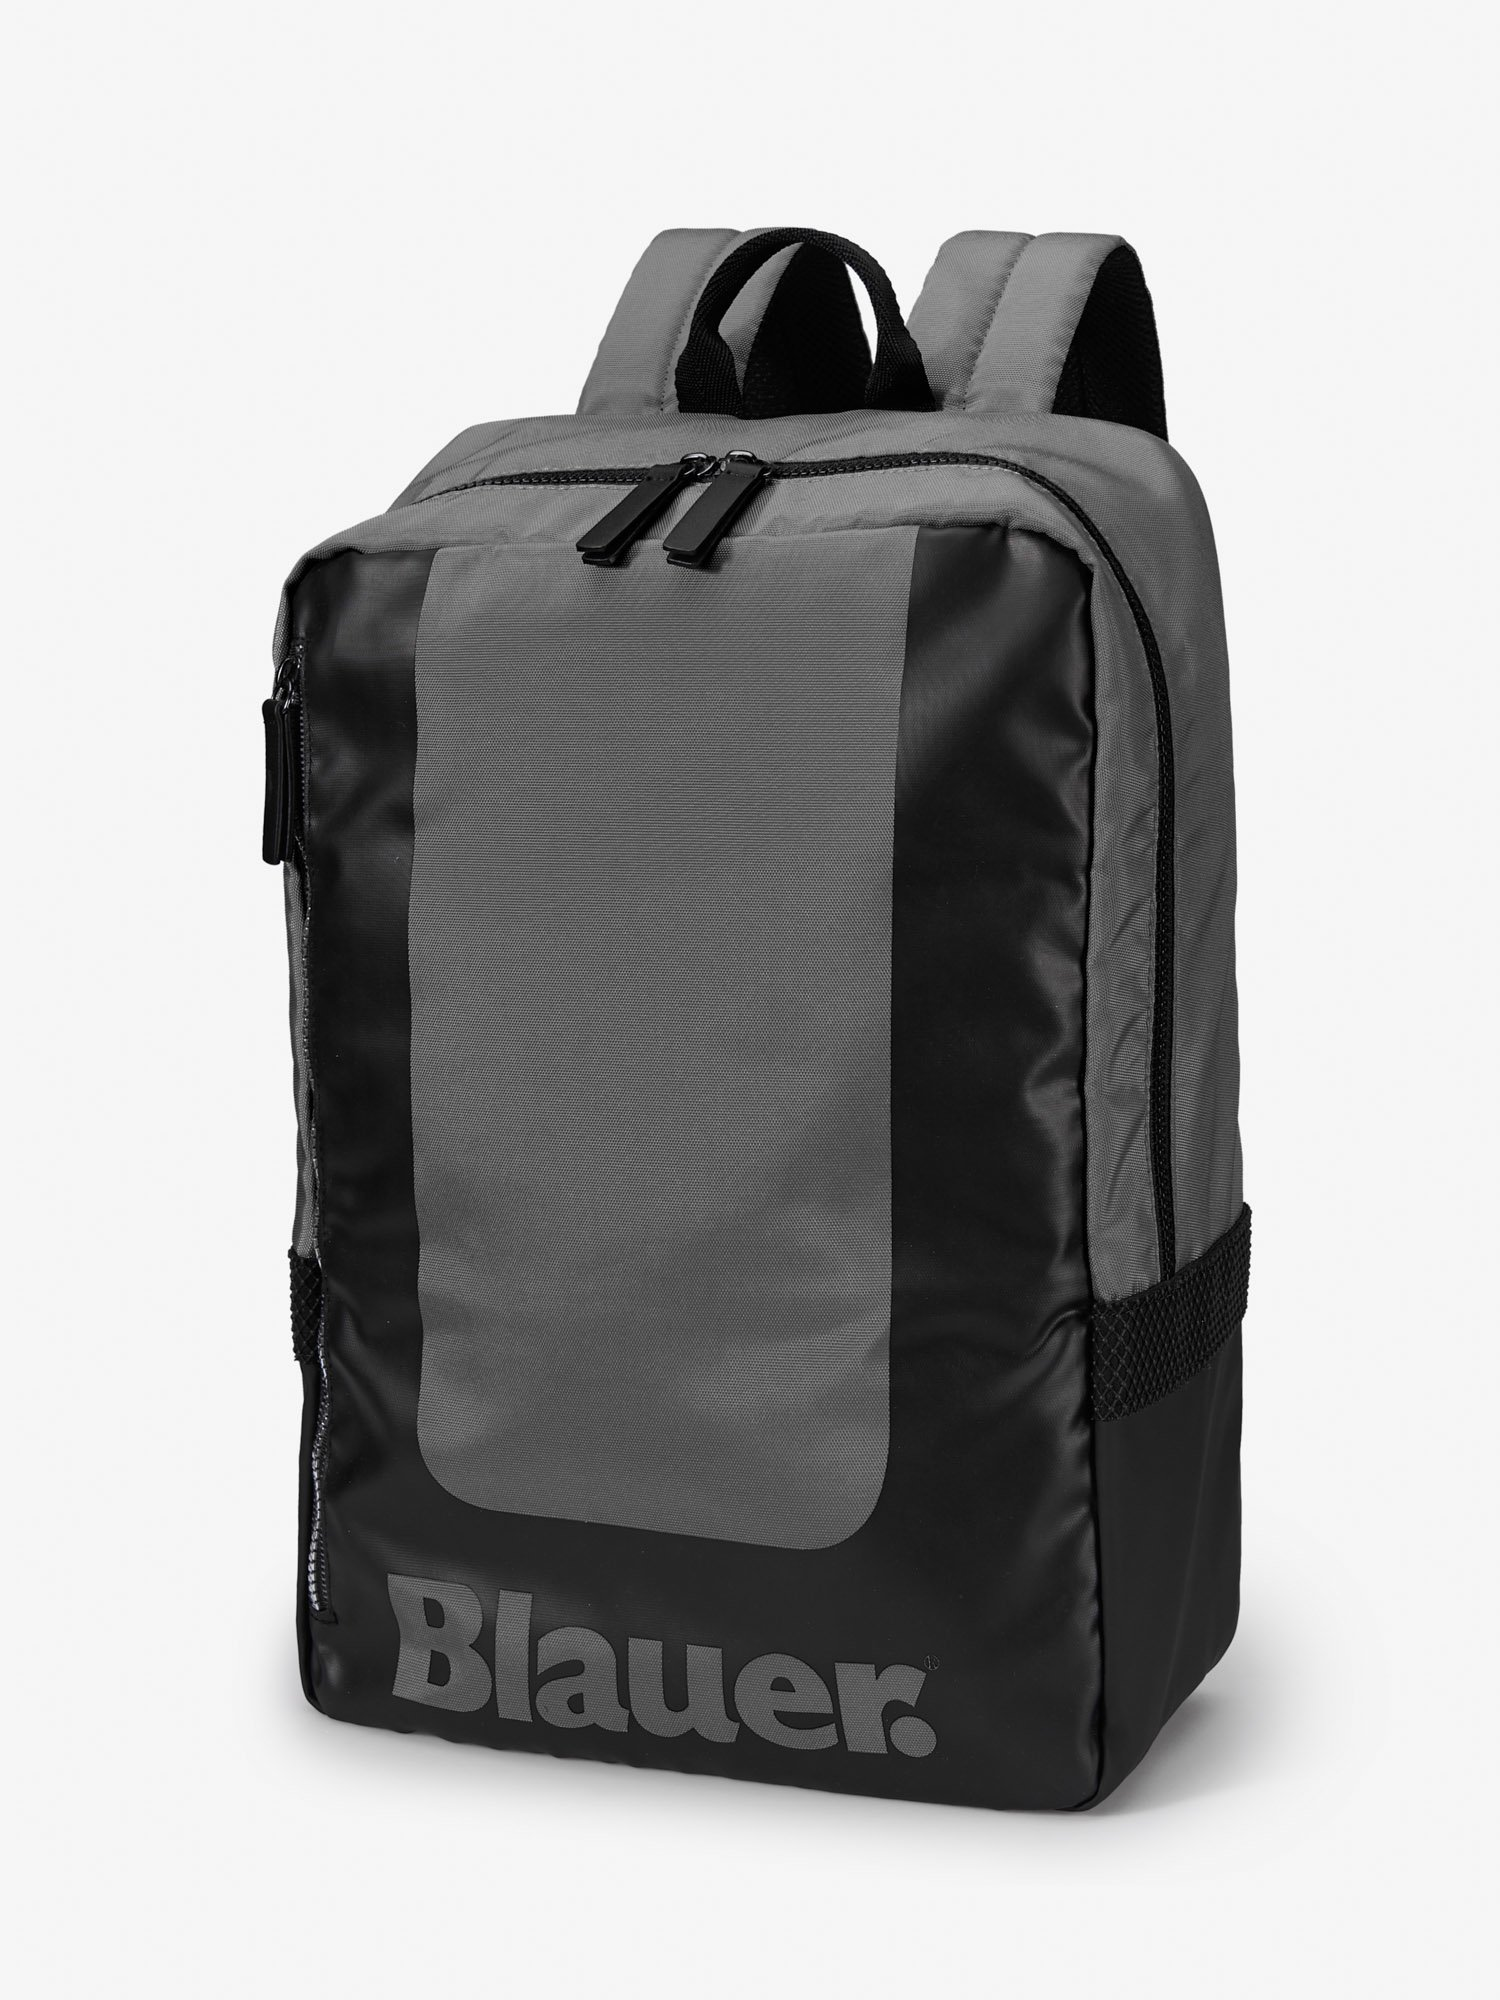 ULTRA-LIGHTWEIGHT BACKPACK - Blauer